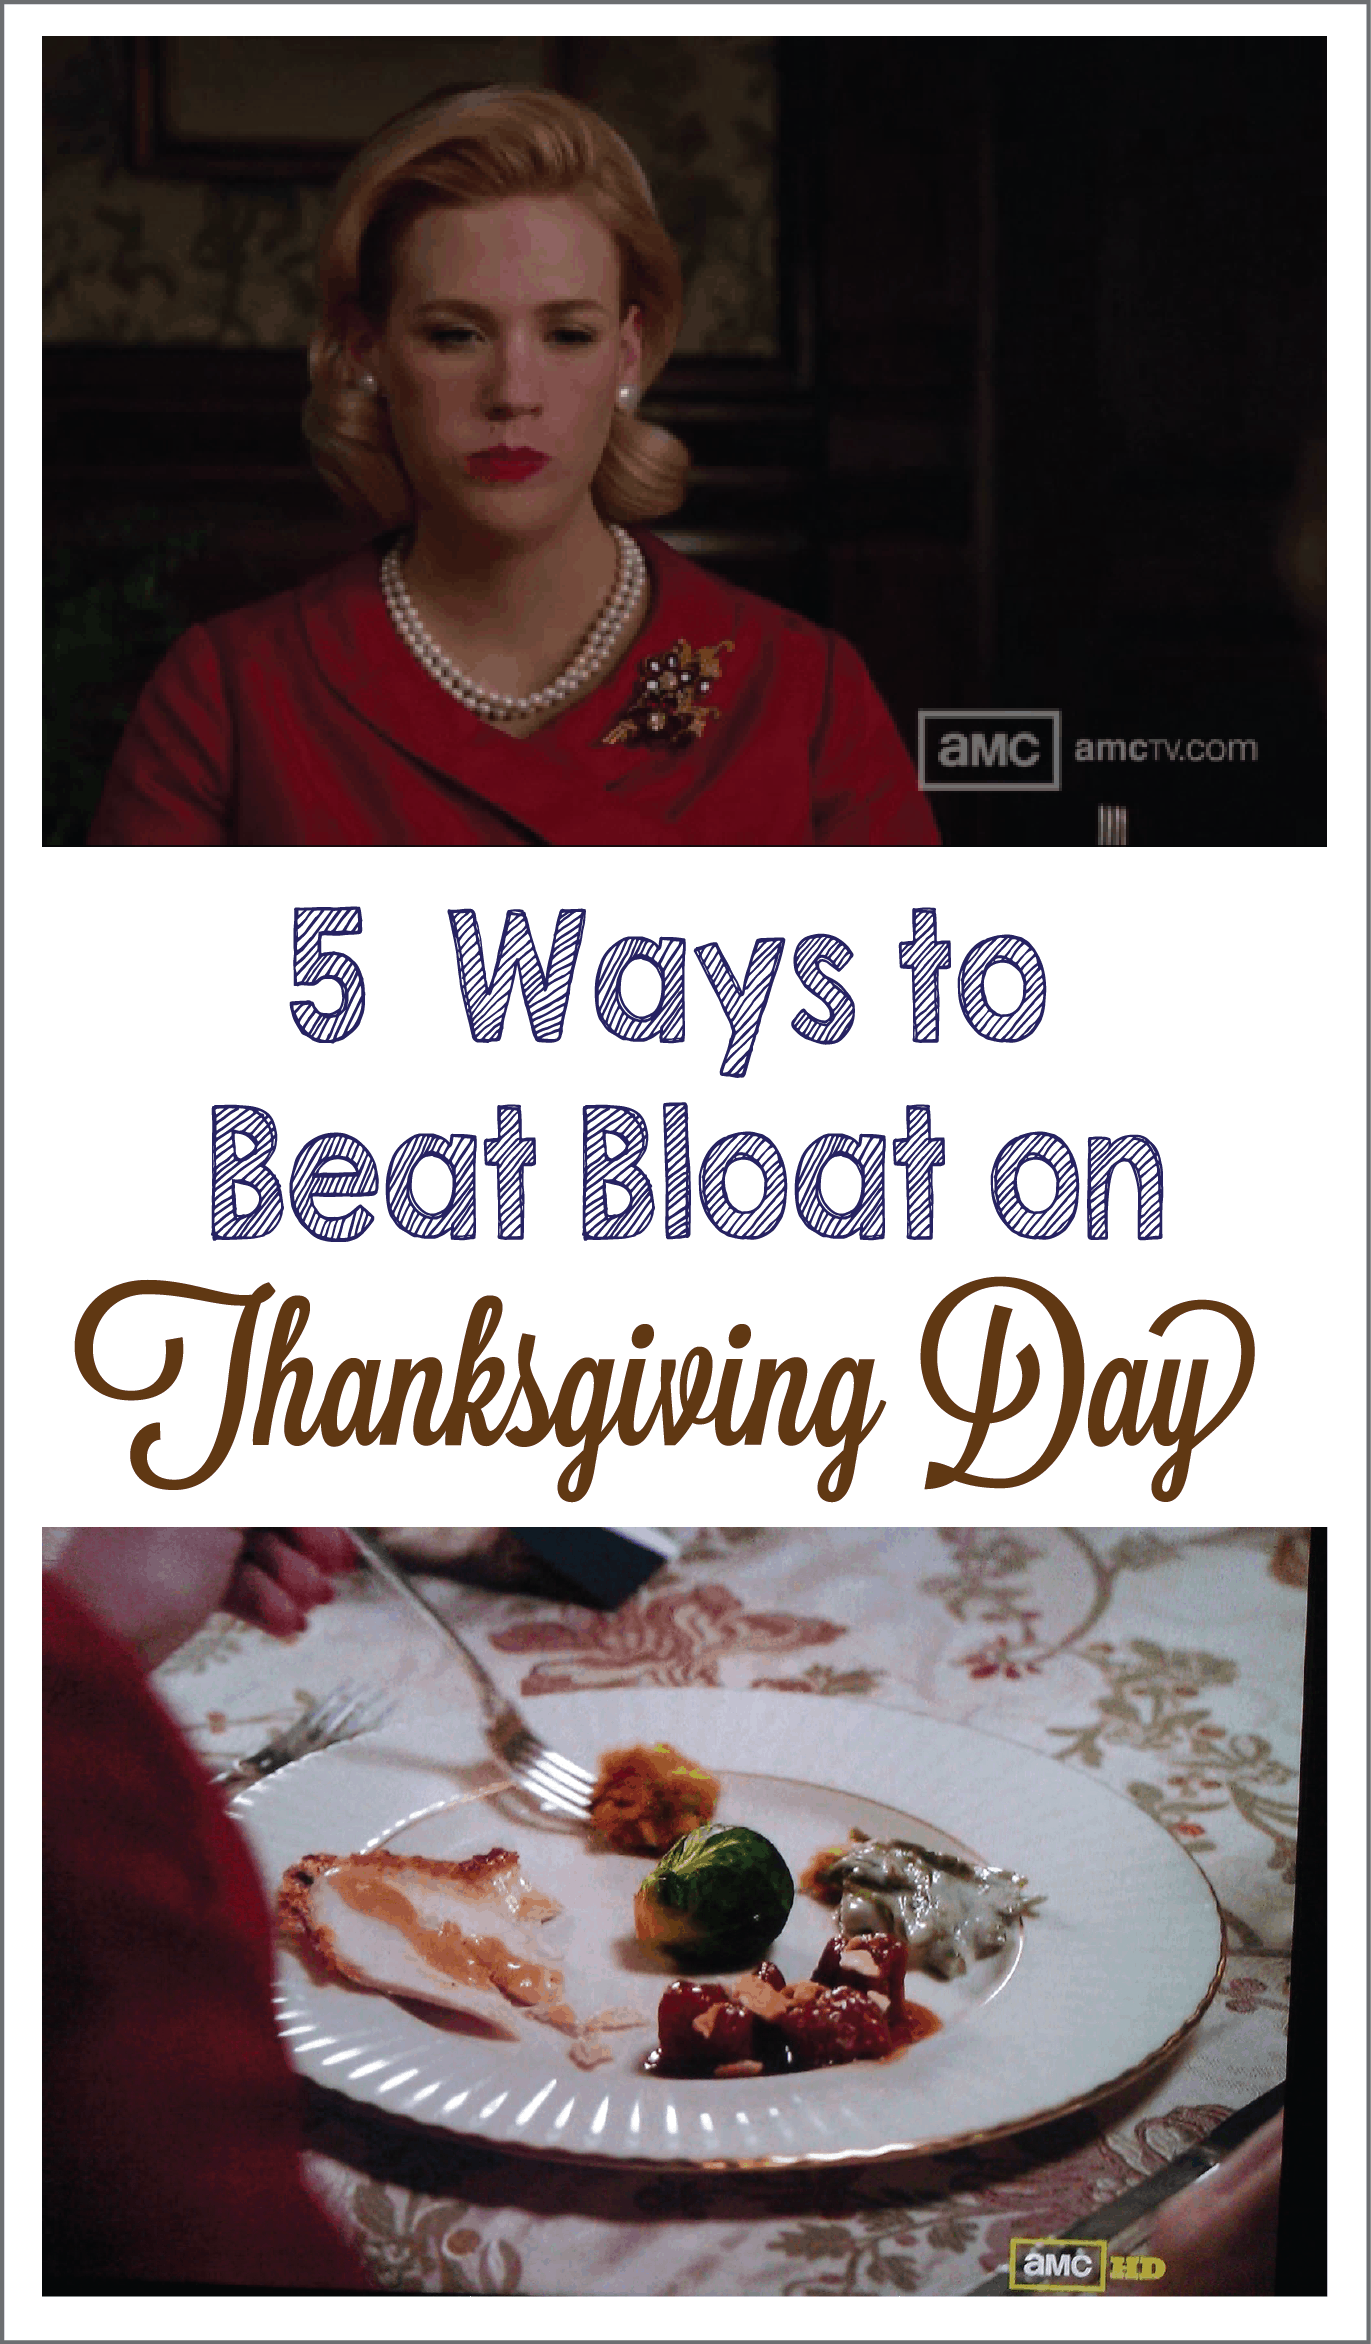 5 ways to beat bloat on Thanksgiving Day will arm you with tips to make your dinner as comfortable as possible.  #thanksgiving #holidays